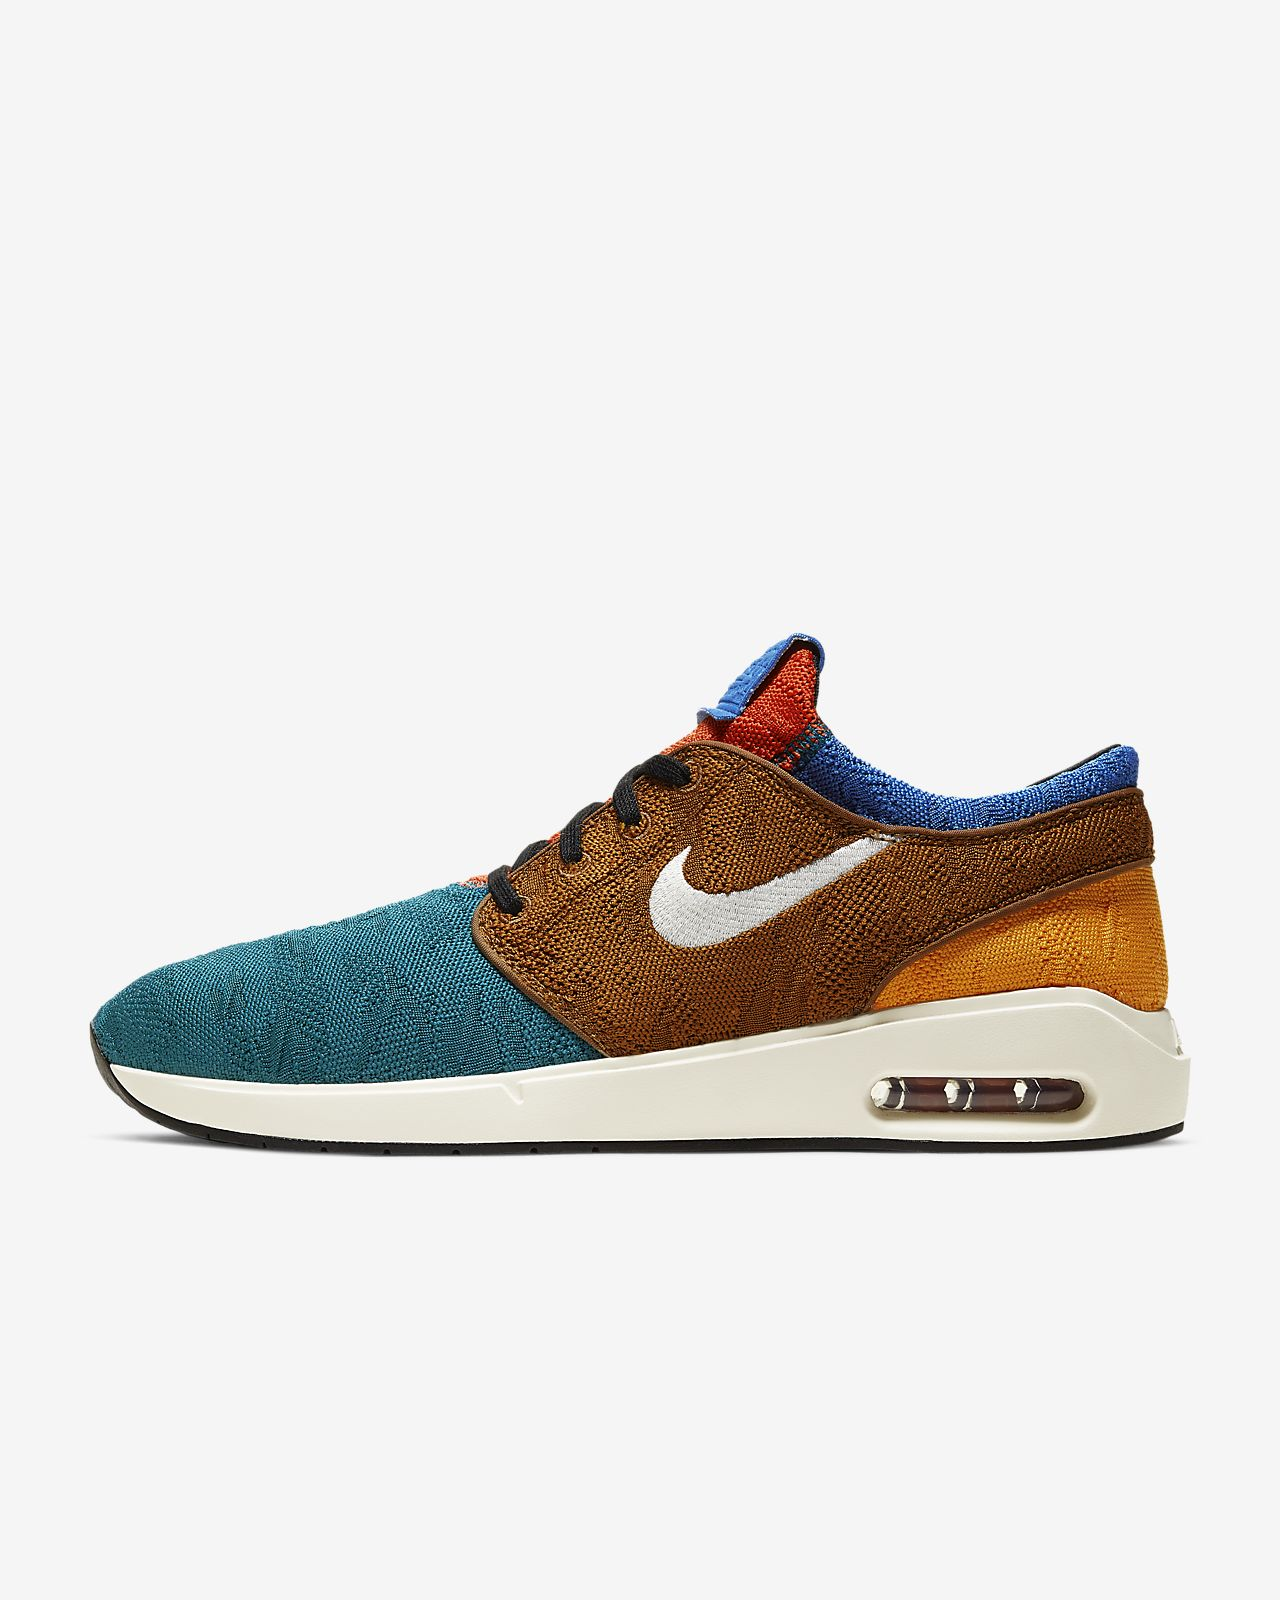 nike sb air max stefan janoski 2 men 39 s skate shoe. Black Bedroom Furniture Sets. Home Design Ideas